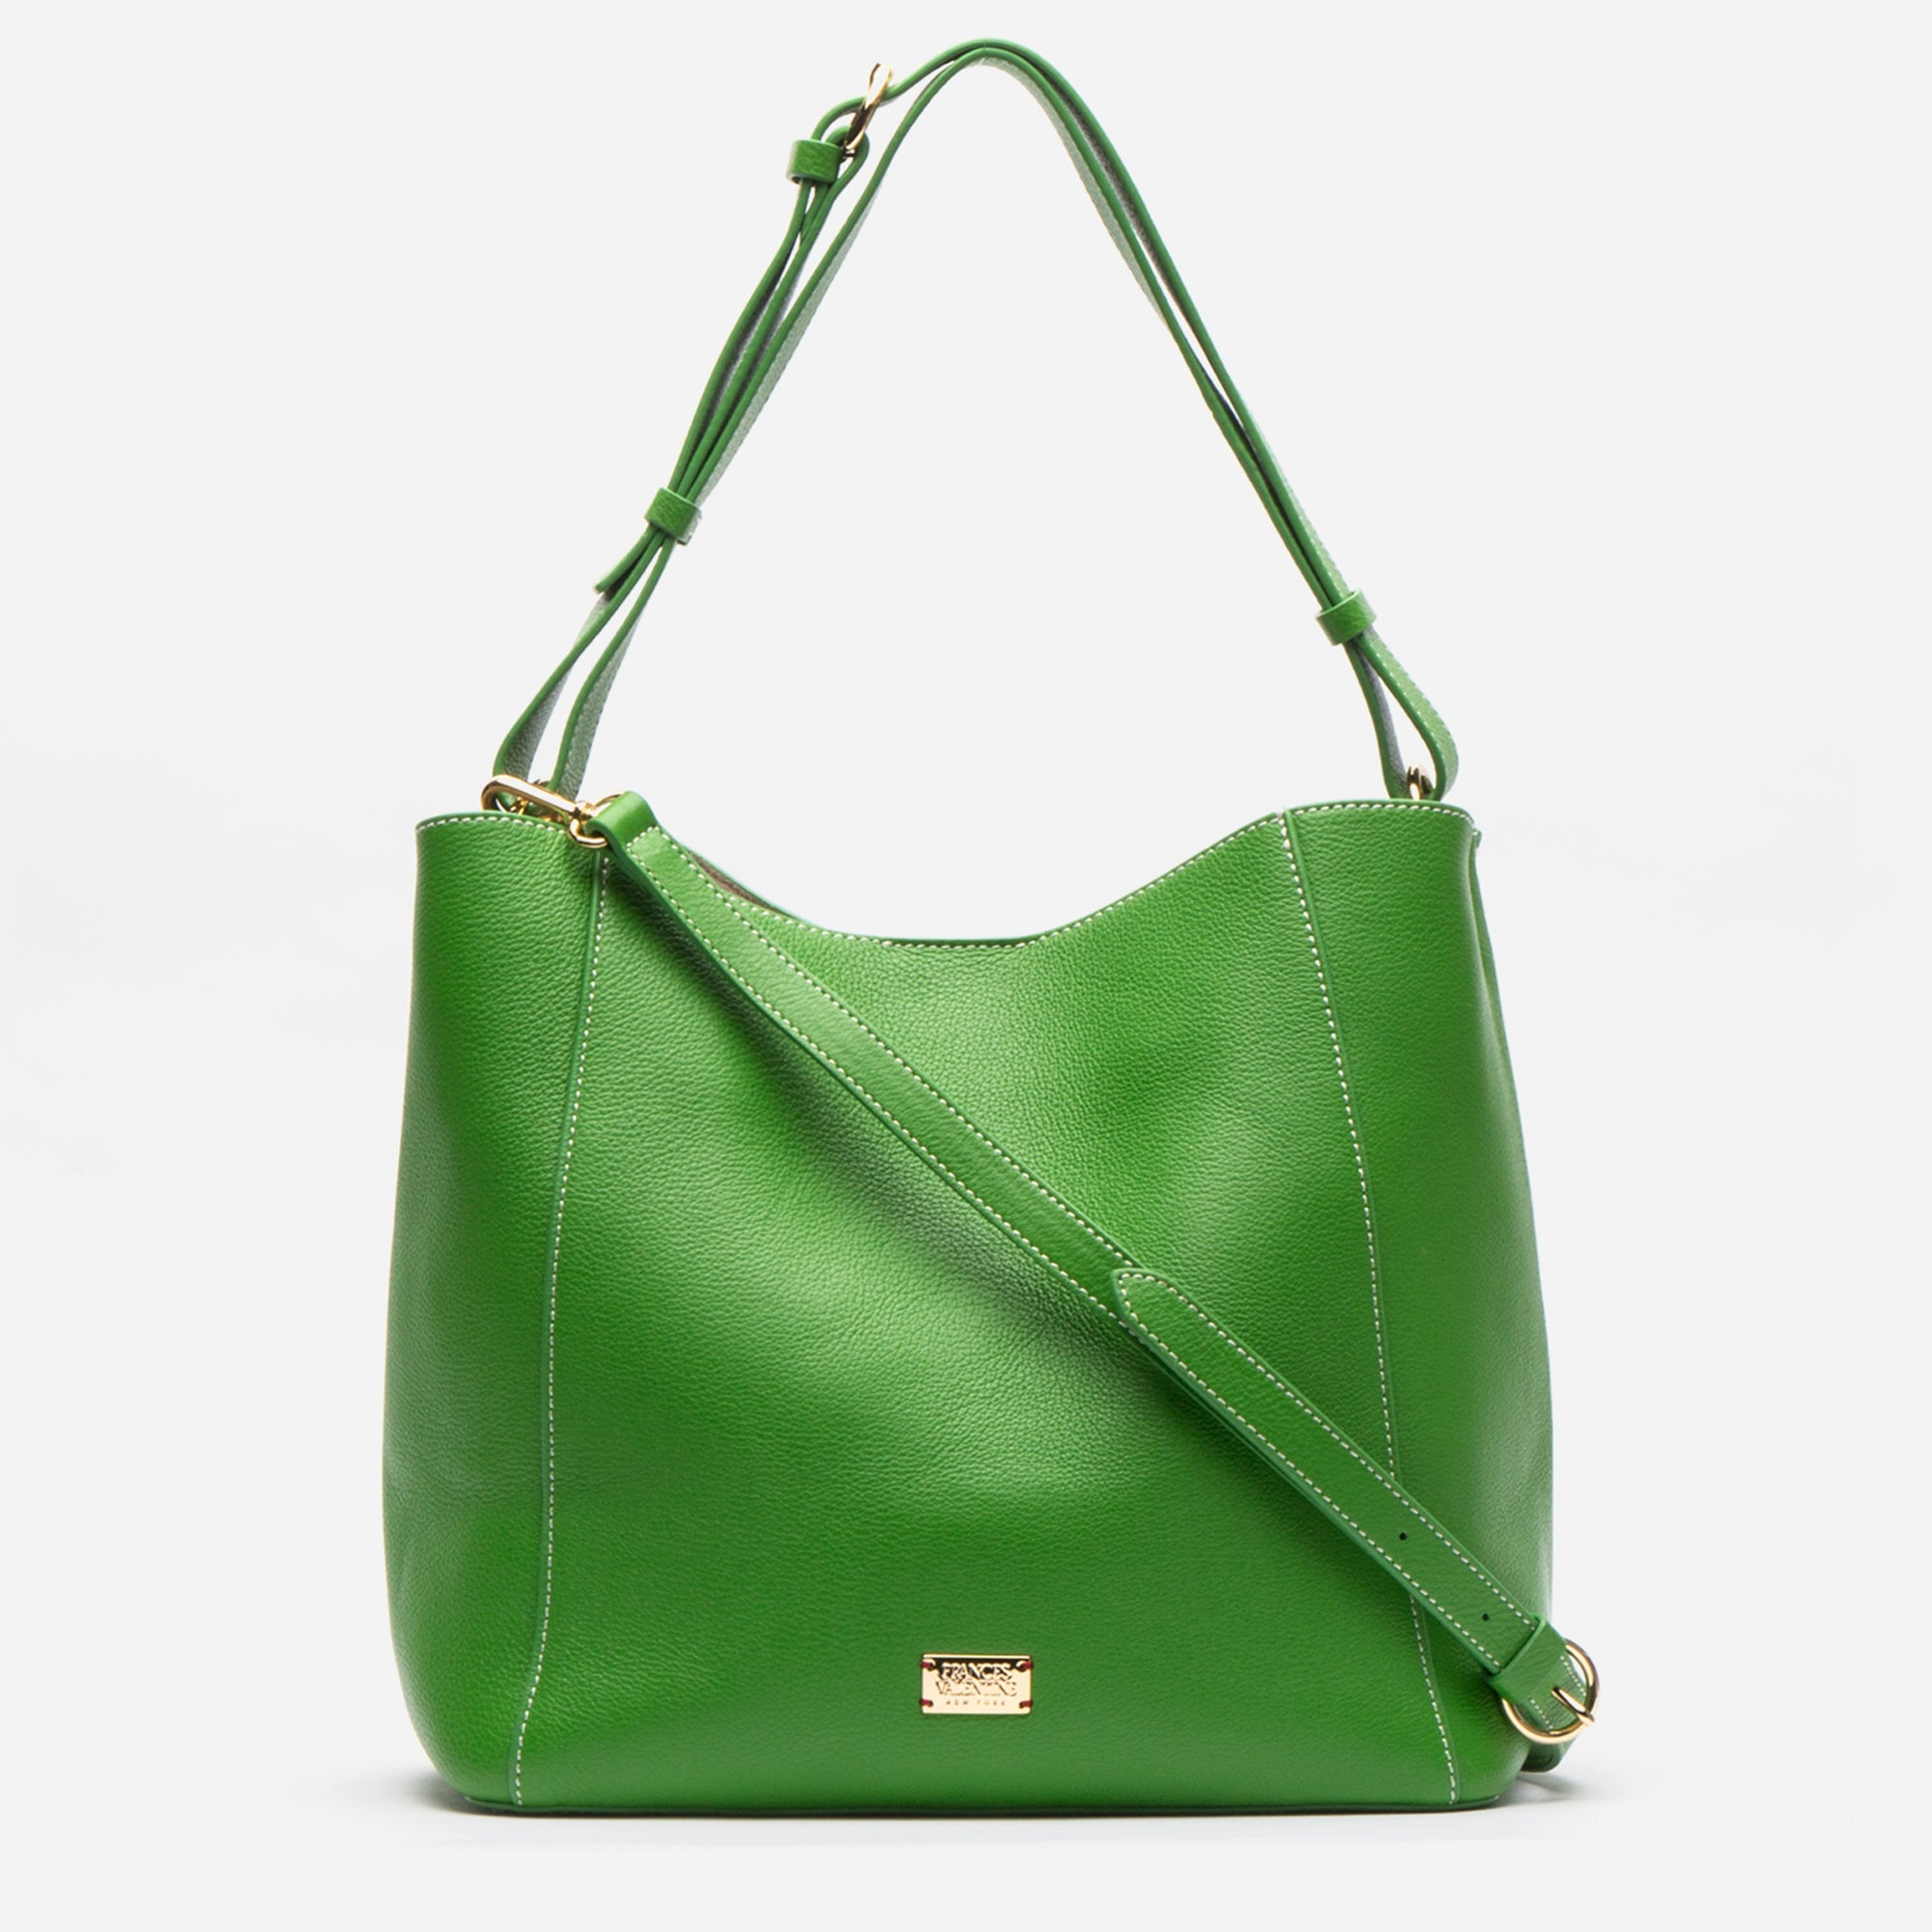 Medium June Hobo Leather Shoulder Tote Grass - Frances Valentine